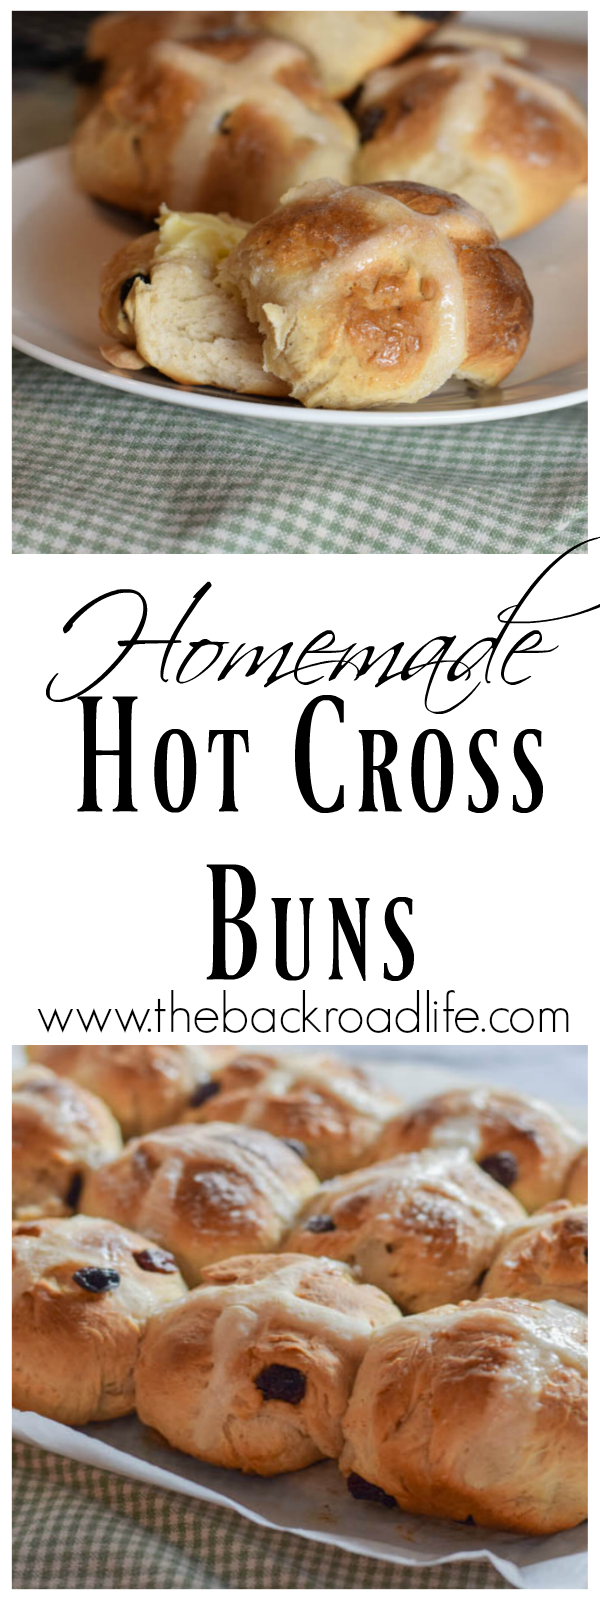 Traditional homemade Hot Cross Buns. Easy recipe using raisins and cinnamon, nutmeg, and ginger. Perfect for Easter